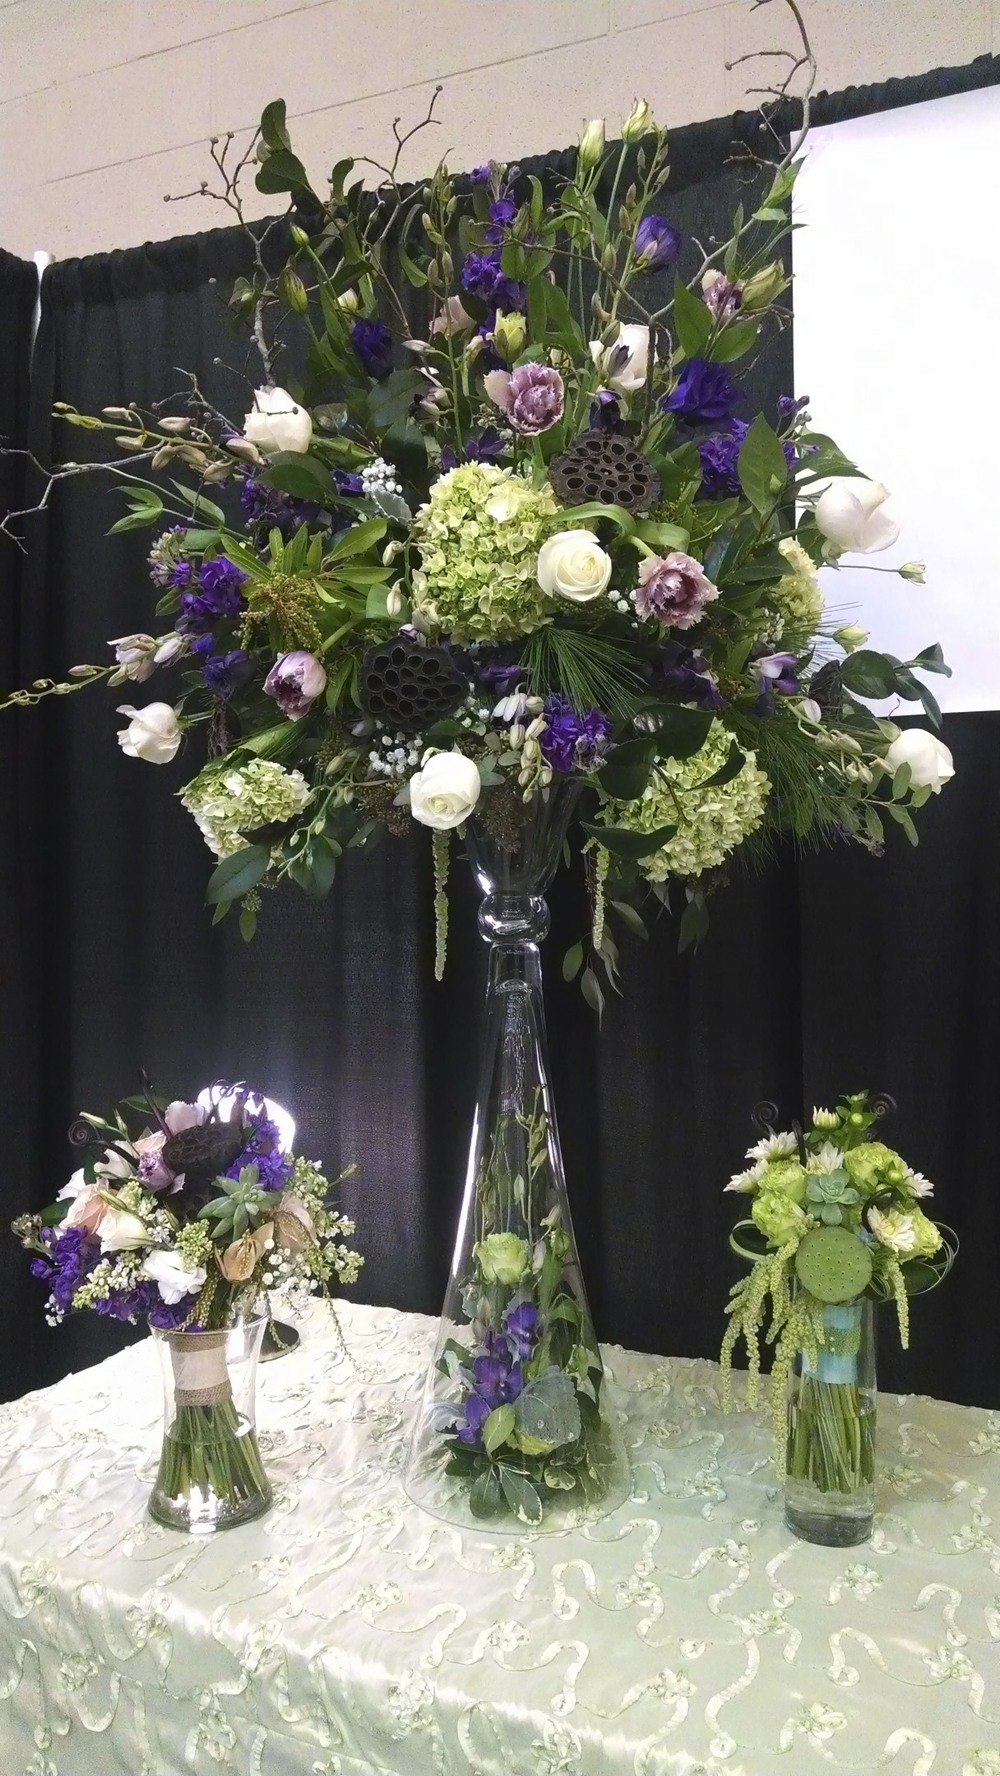 The main show piece in my booth.  A large scale arrangement, upraised on a reflection vase from accent decor.  Purple Stock, double fringed Tulips, Dendrobium Orchids, white Roses, green Hydrangeas, dried Lotus pods, Camellia foliage, Dogwood branches.